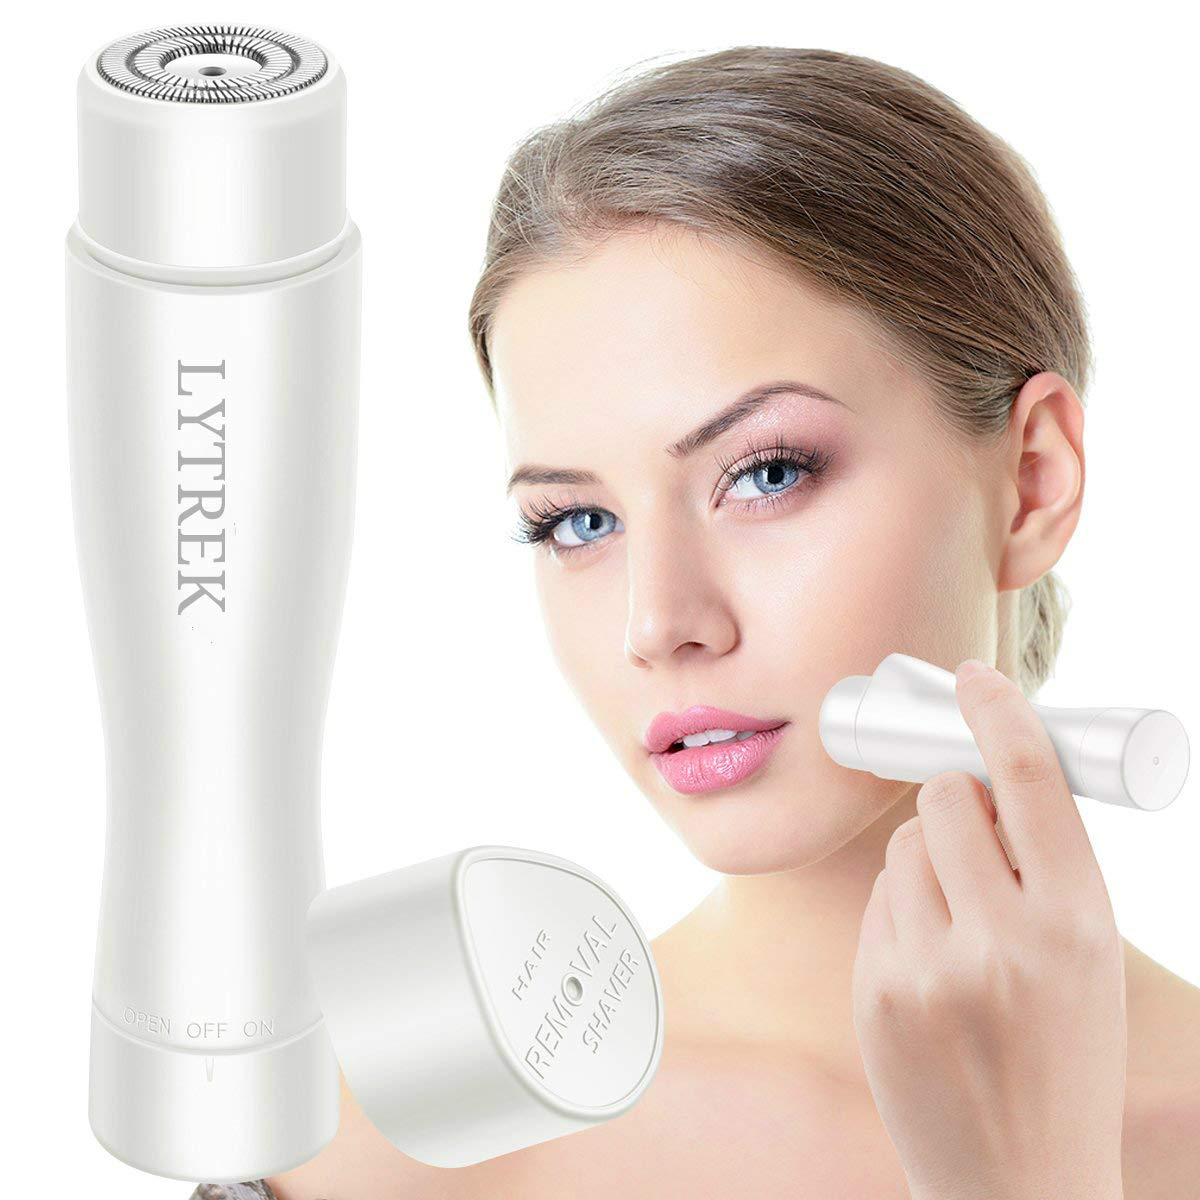 Facial Hair Removal for Women,Lytrek Electric Painless Hair Remover Trimmer for Face,Armpit,Chin and Full Body,Waterproof with LED Light,White